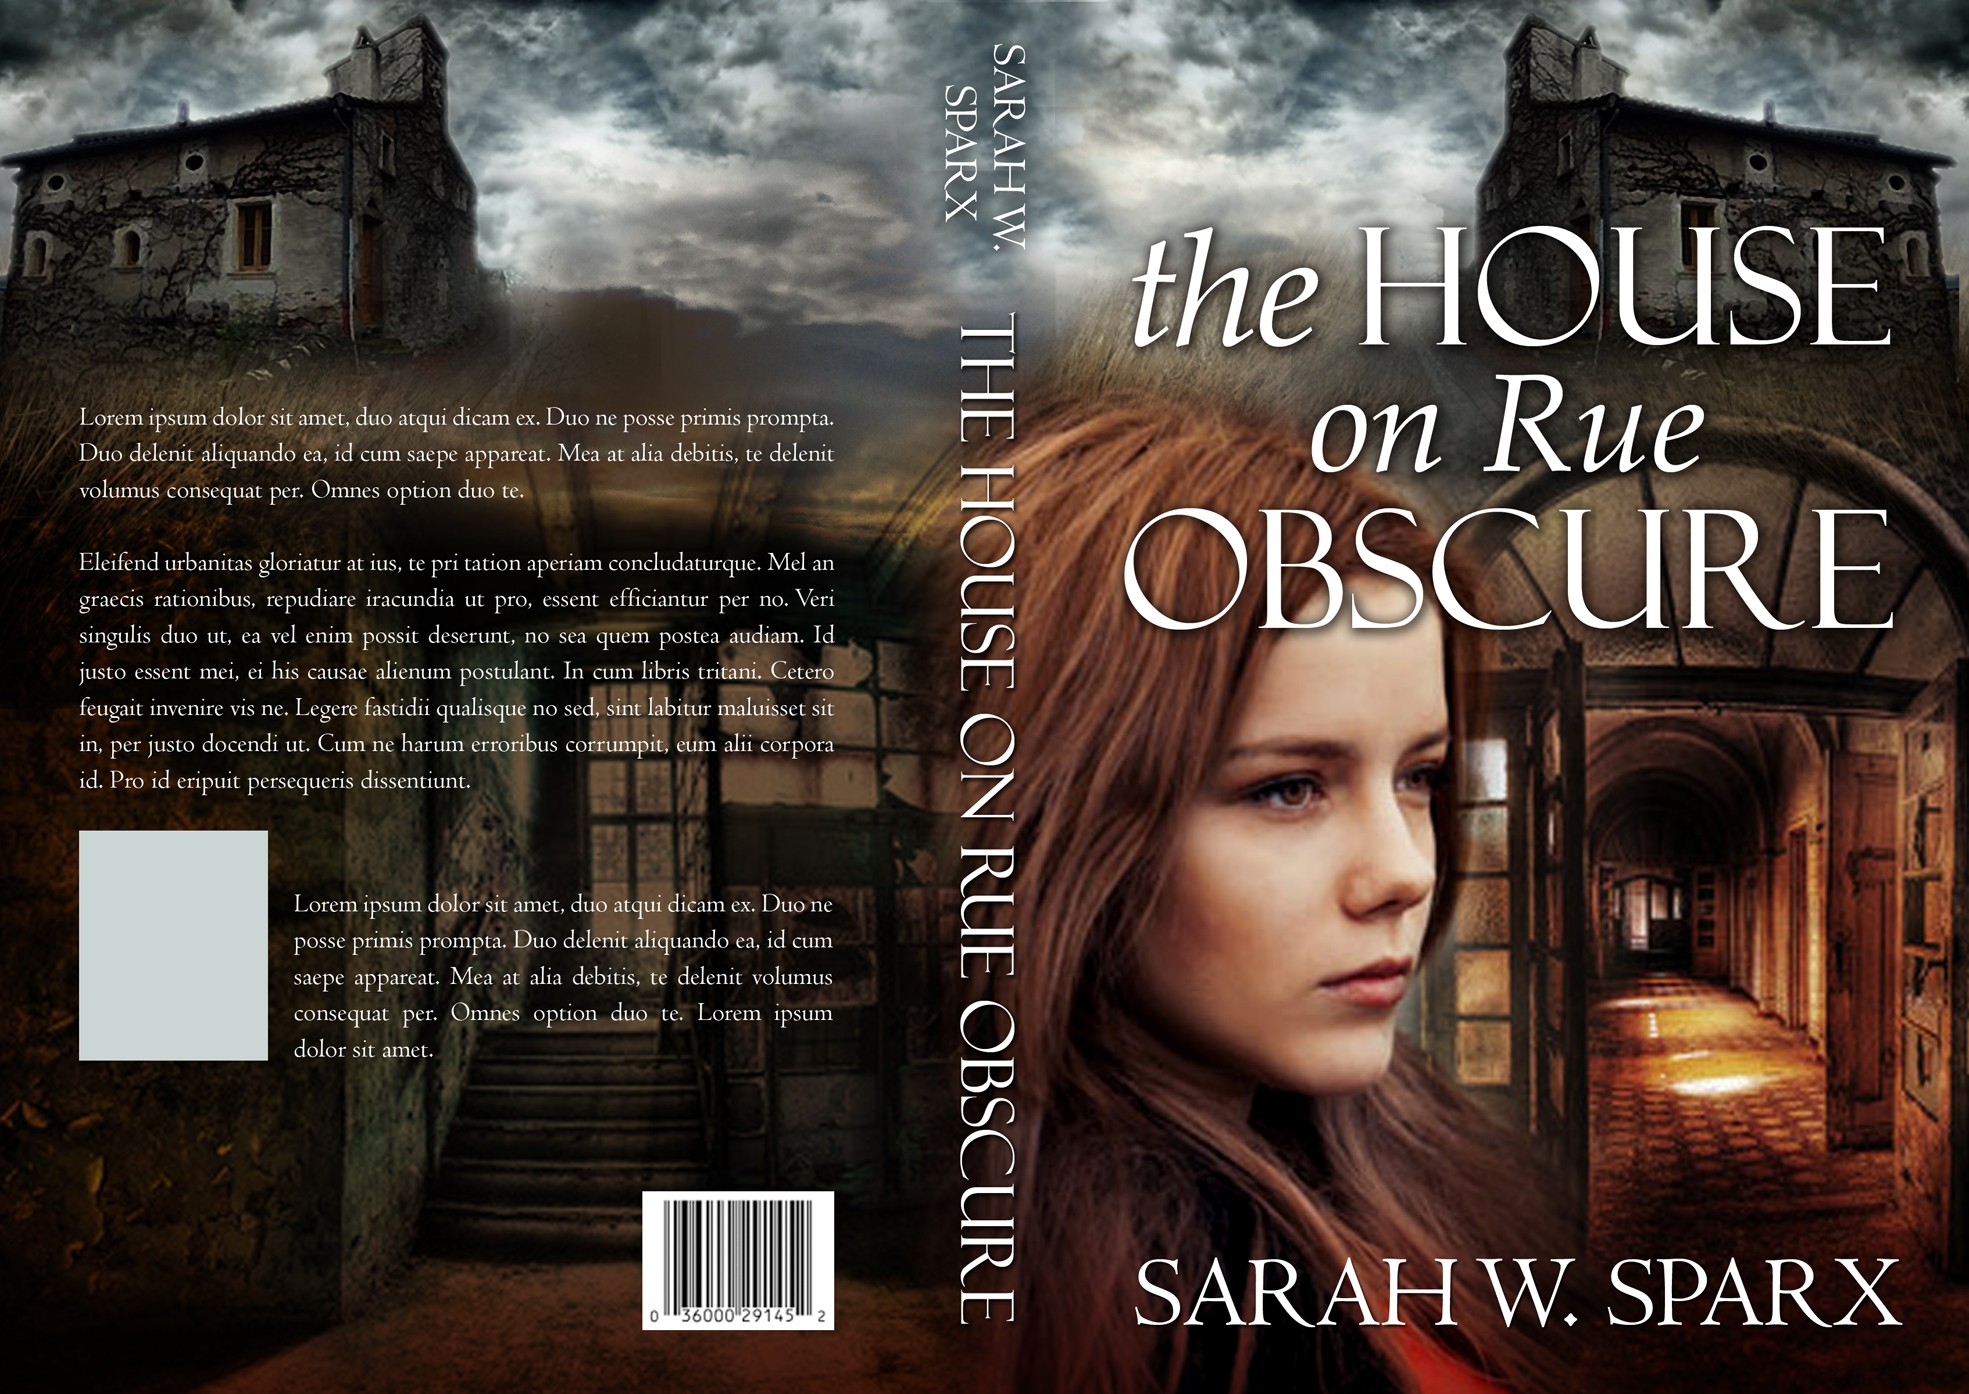 Book Cover for: Gothic-flavoured romantic suspense set in southern France